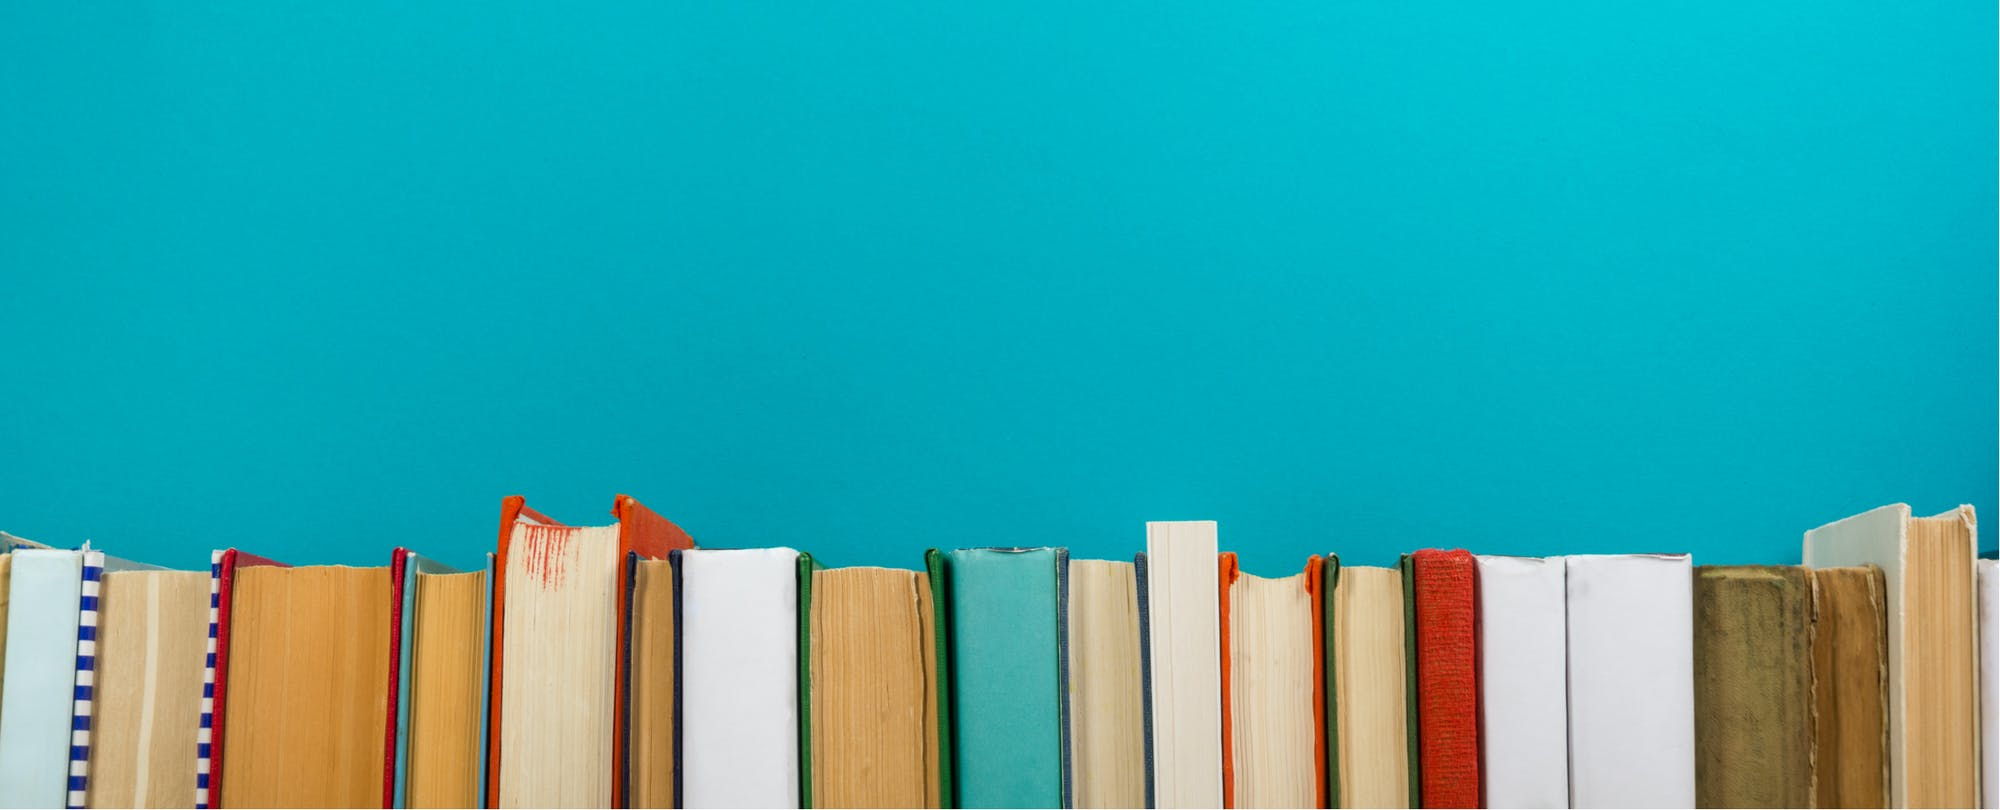 These Education Books Sparked Conversation in 2018—And Give Us A Glimpse At What's Ahead